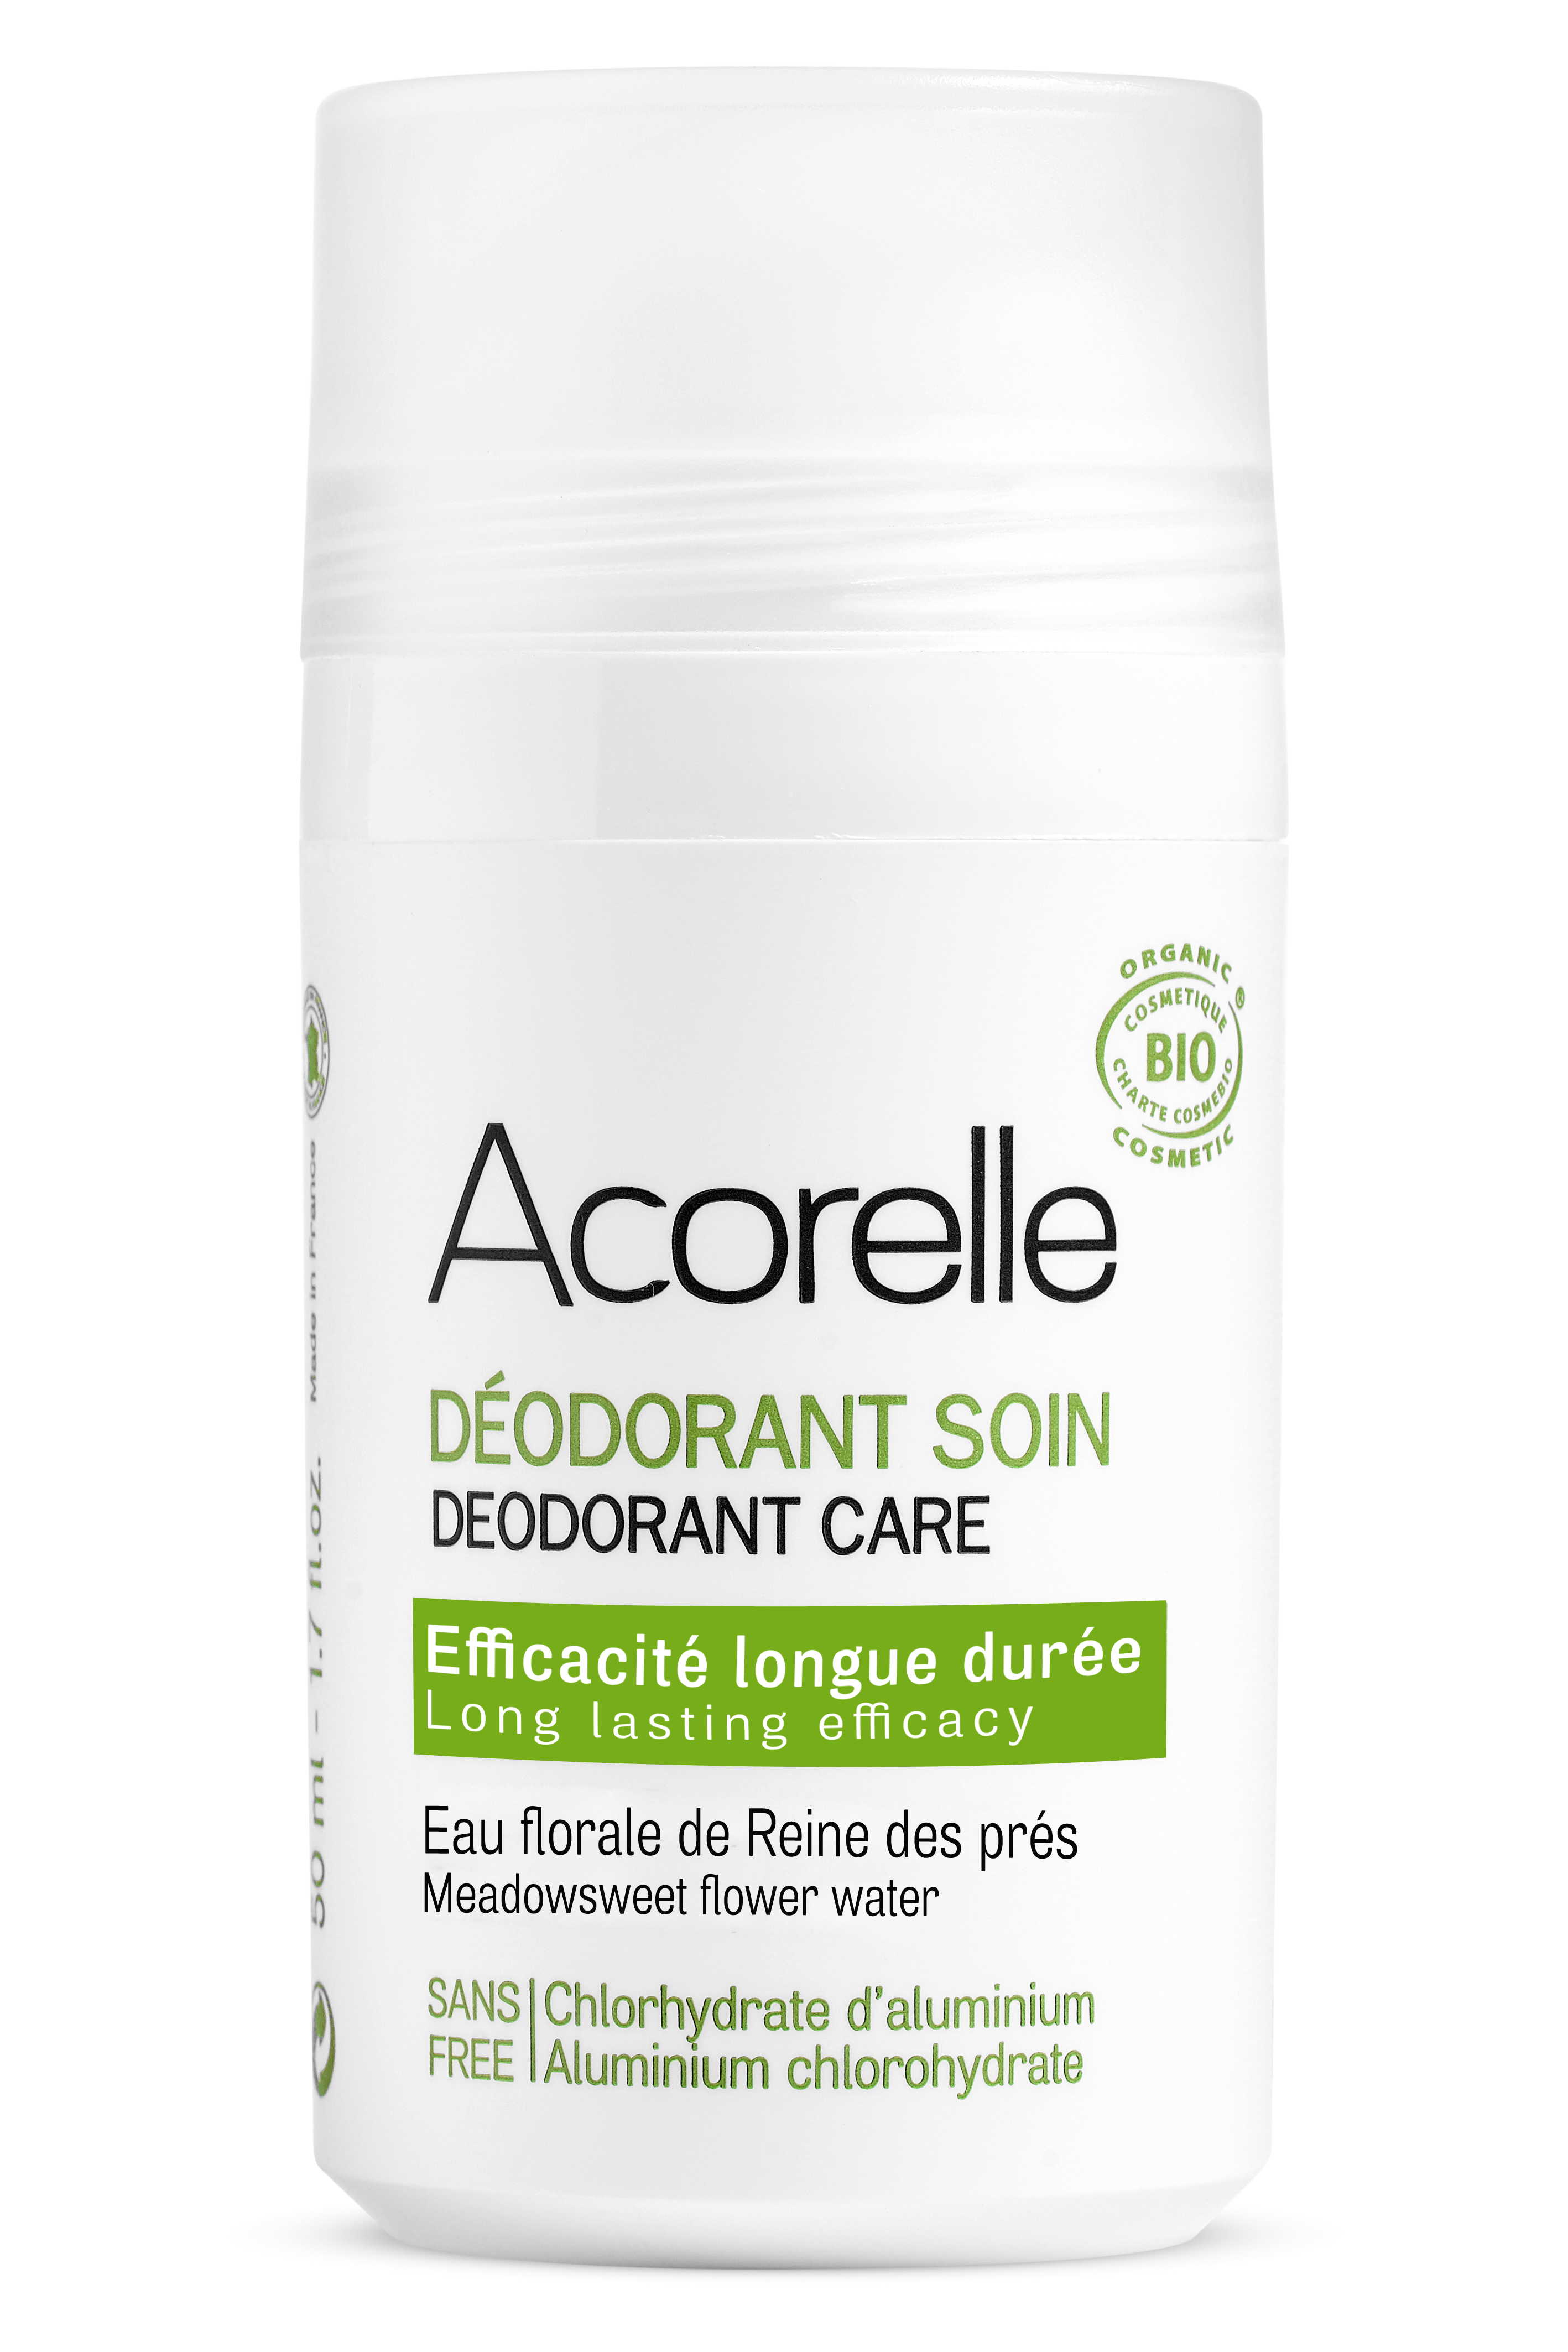 ACORELLE Deodorant Long lasting effect 50ml